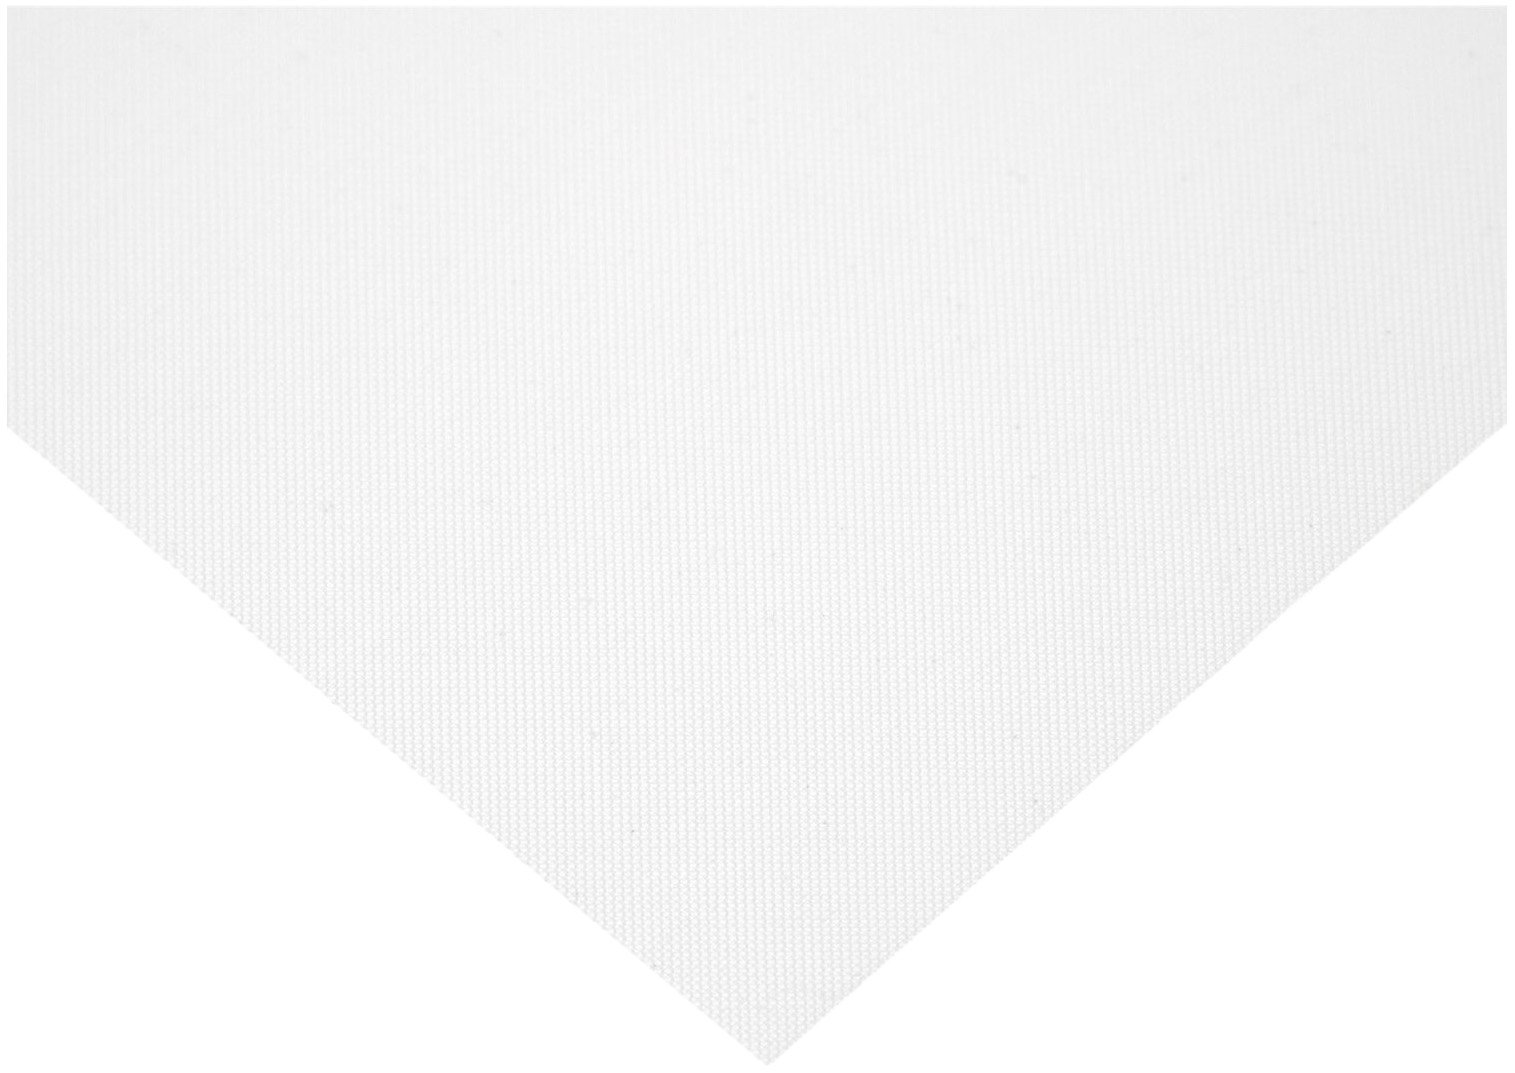 Nylon 6/6 Woven Mesh Sheet, Opaque Off-White, 12'' Width, 12'' Length, 250 microns Mesh Size, 34% Open Area